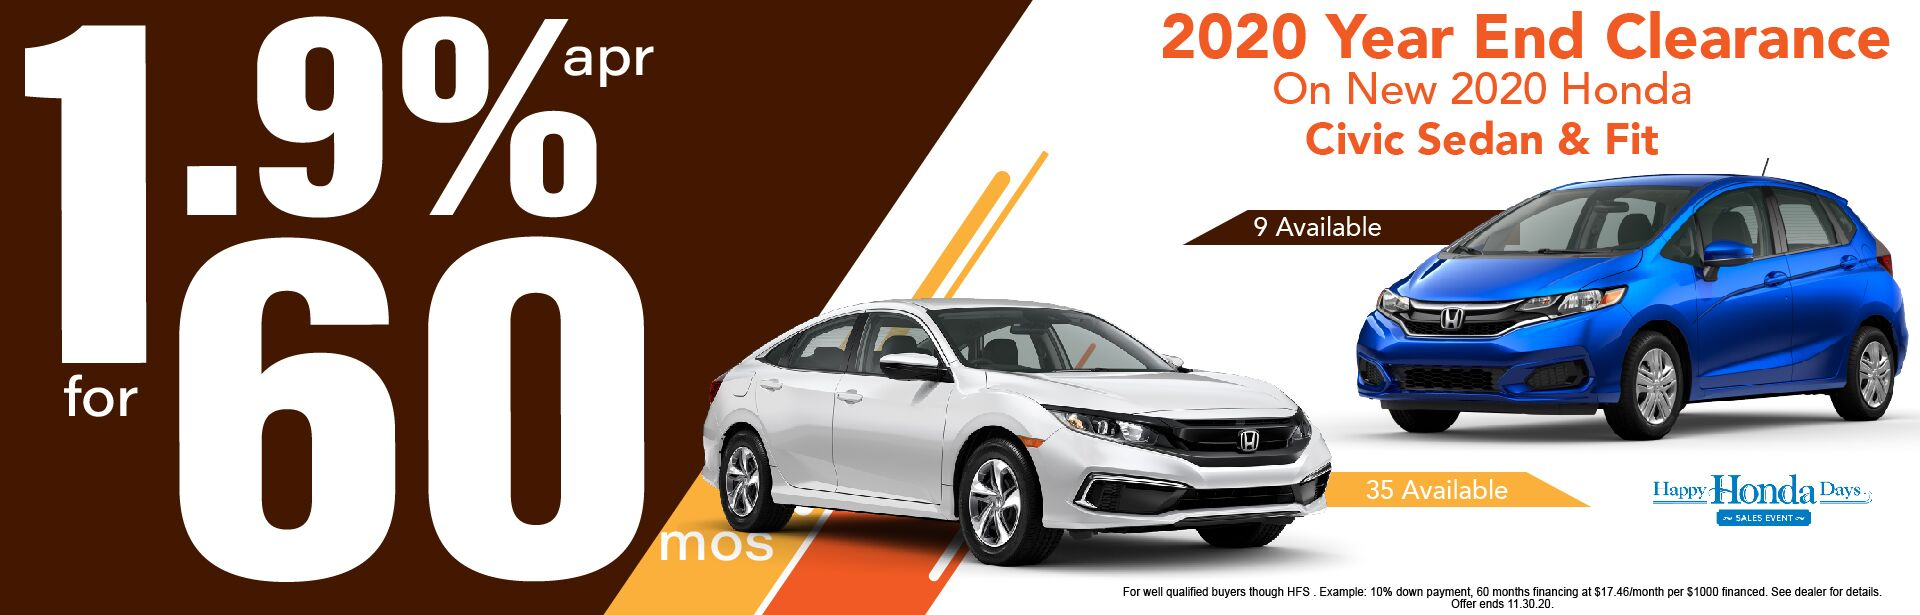 Honda Year End Clearance Event: 1.9% APR for 60 Mos.